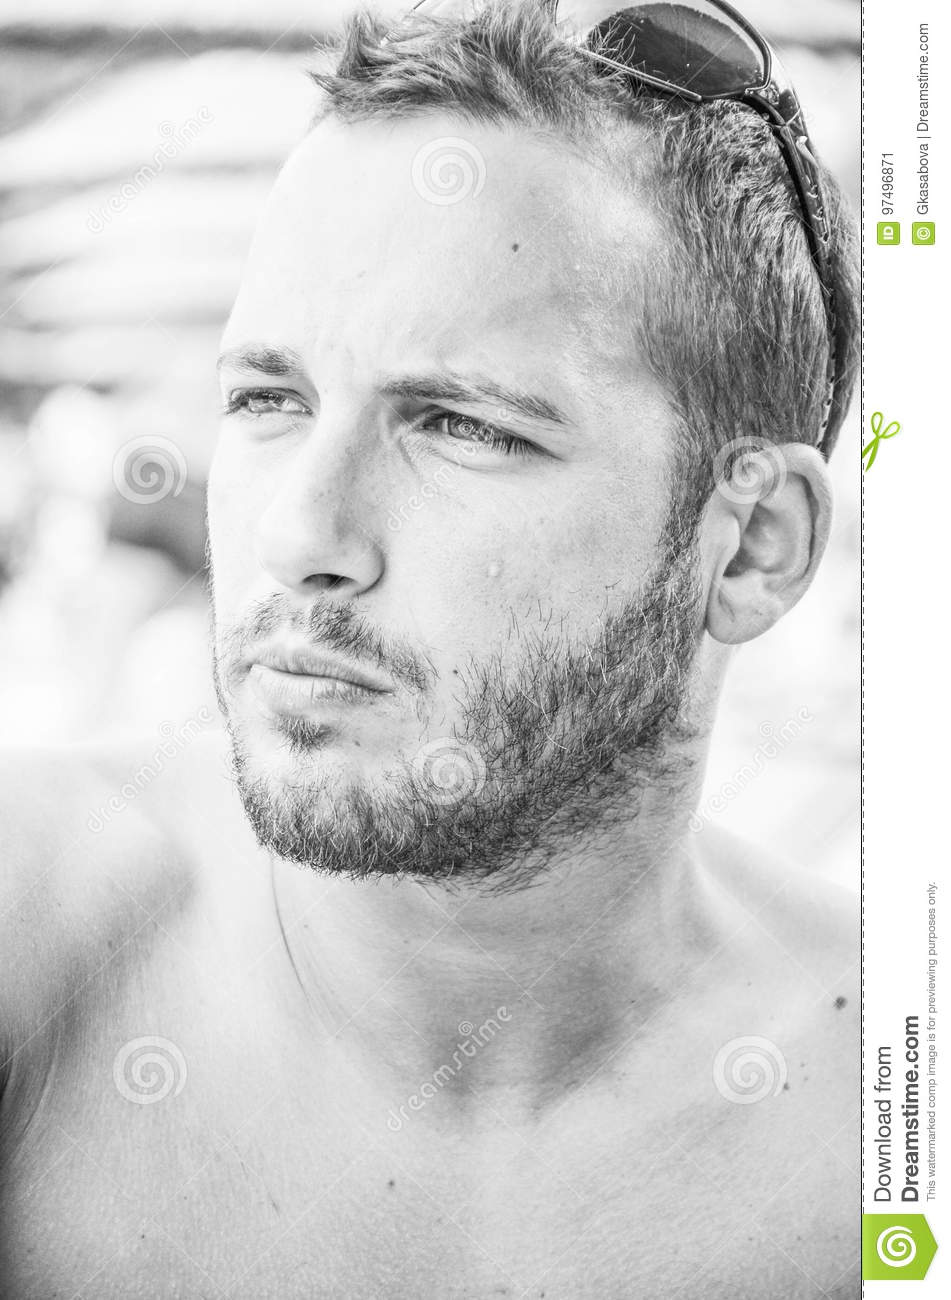 Black and white portrait of handsome seriuos bearded man